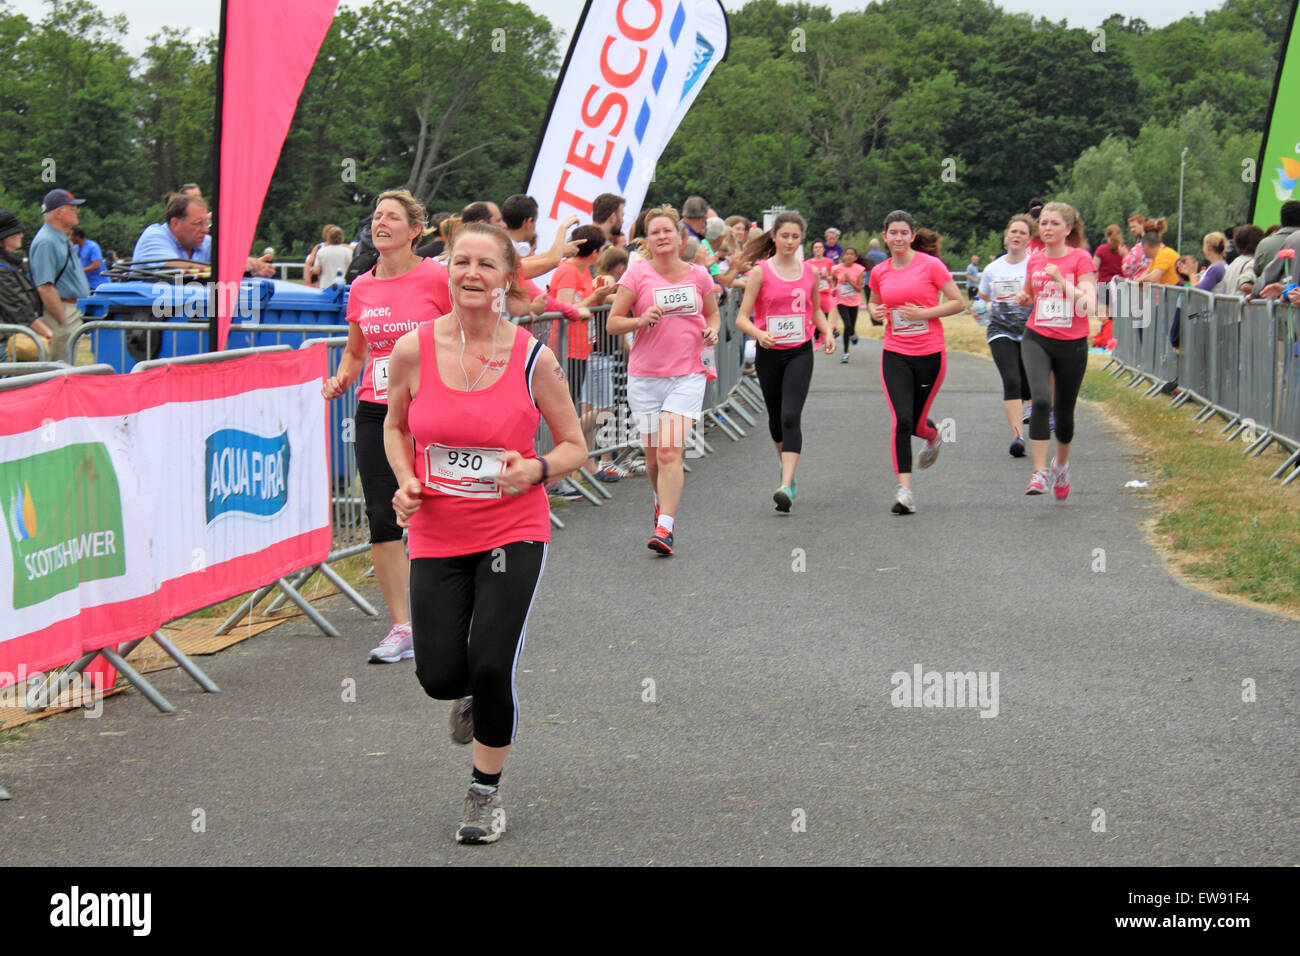 Approaching the finishing line at 'Race for LIfe' women-only charity fundraising running event for Cancer - Stock Image